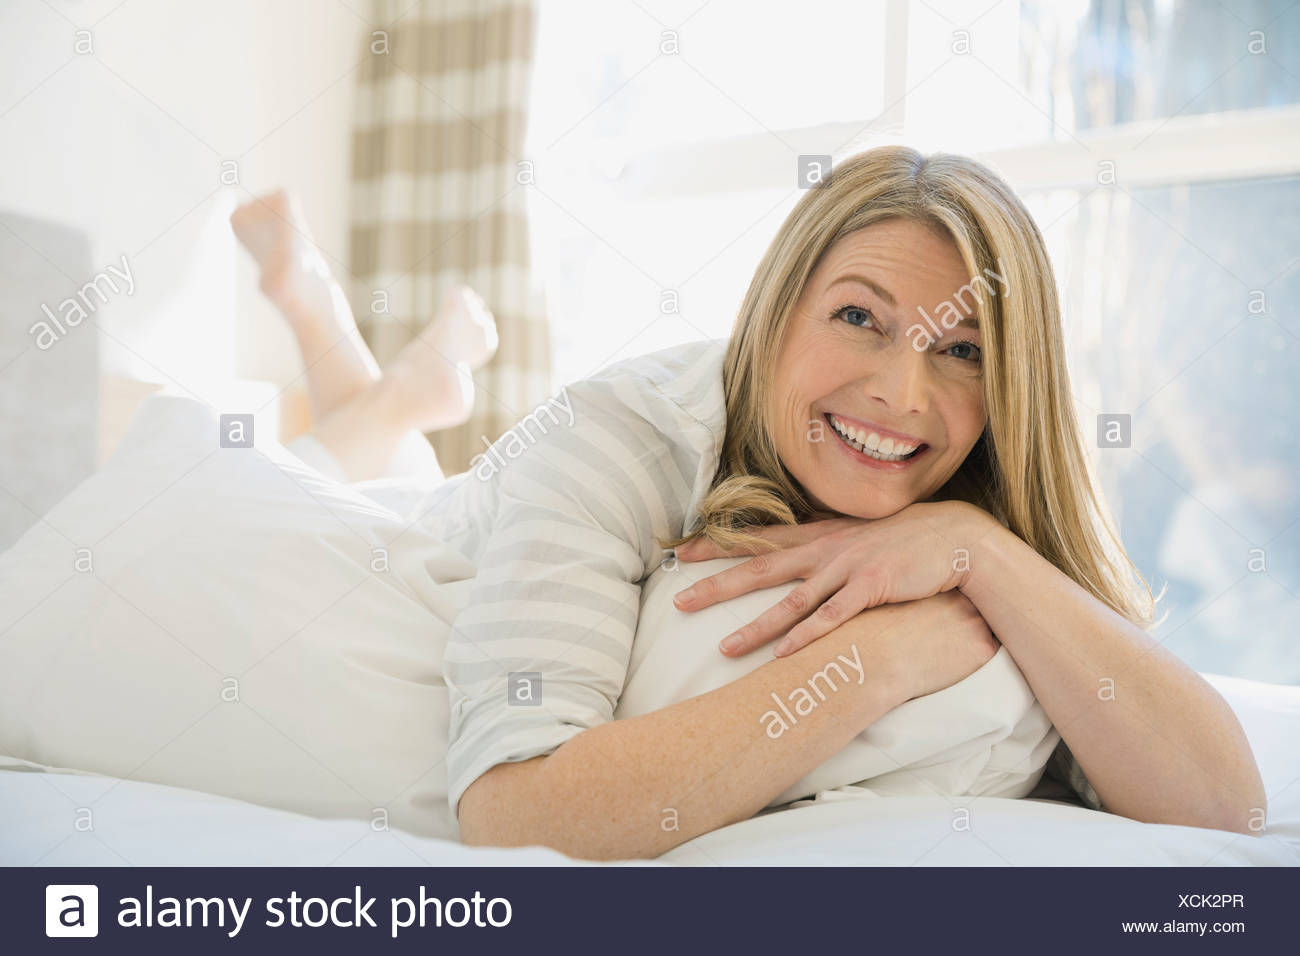 Smiling woman laying on bed - Stock Image